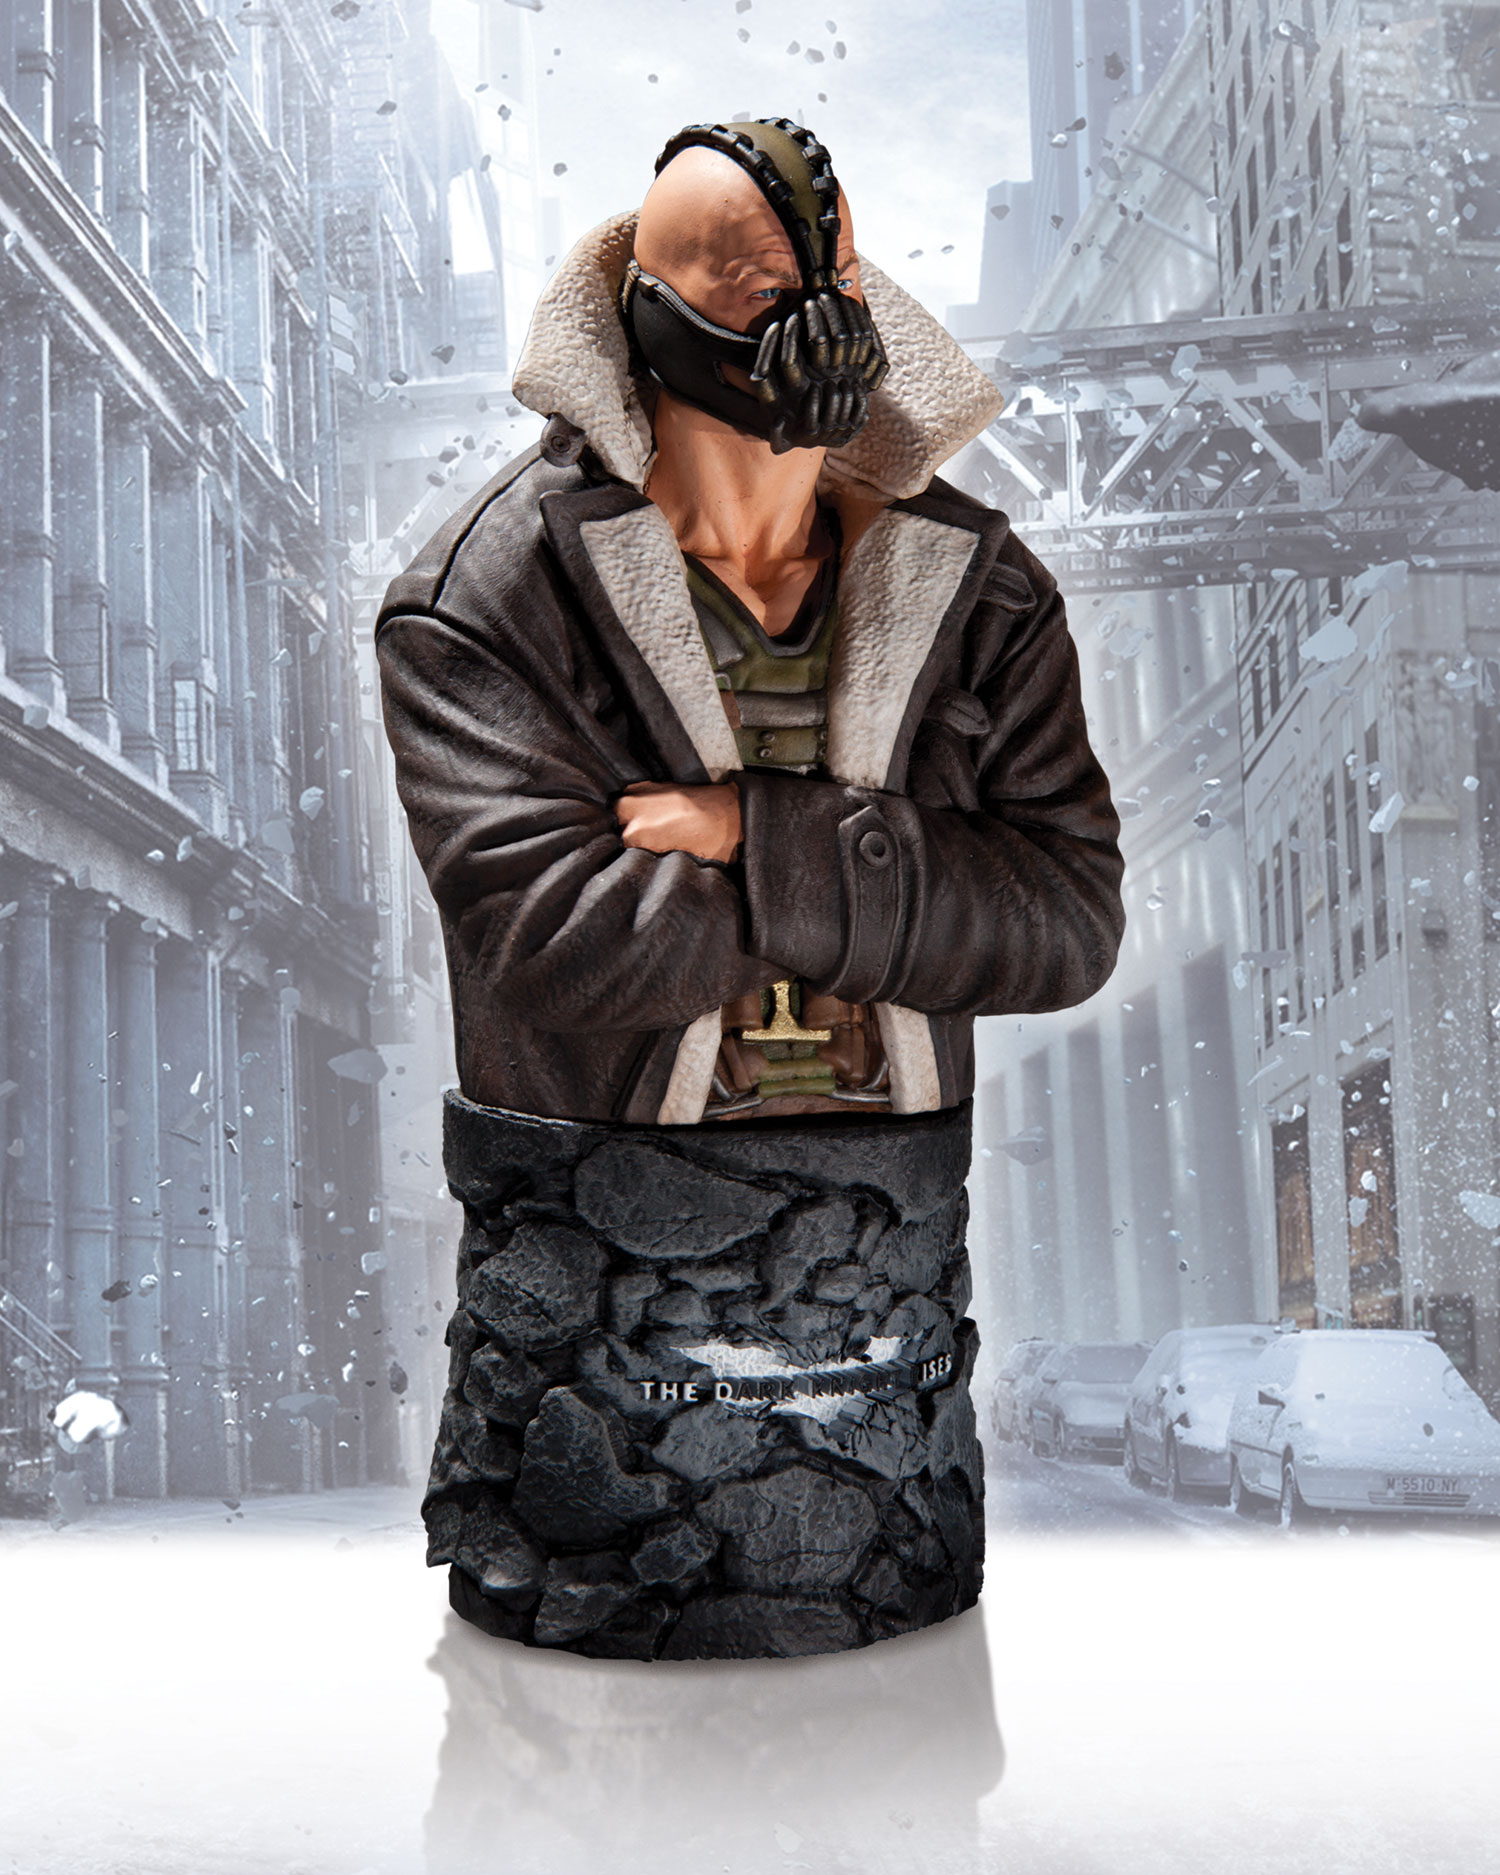 The Dark Knight Rises Winter Bane Bust